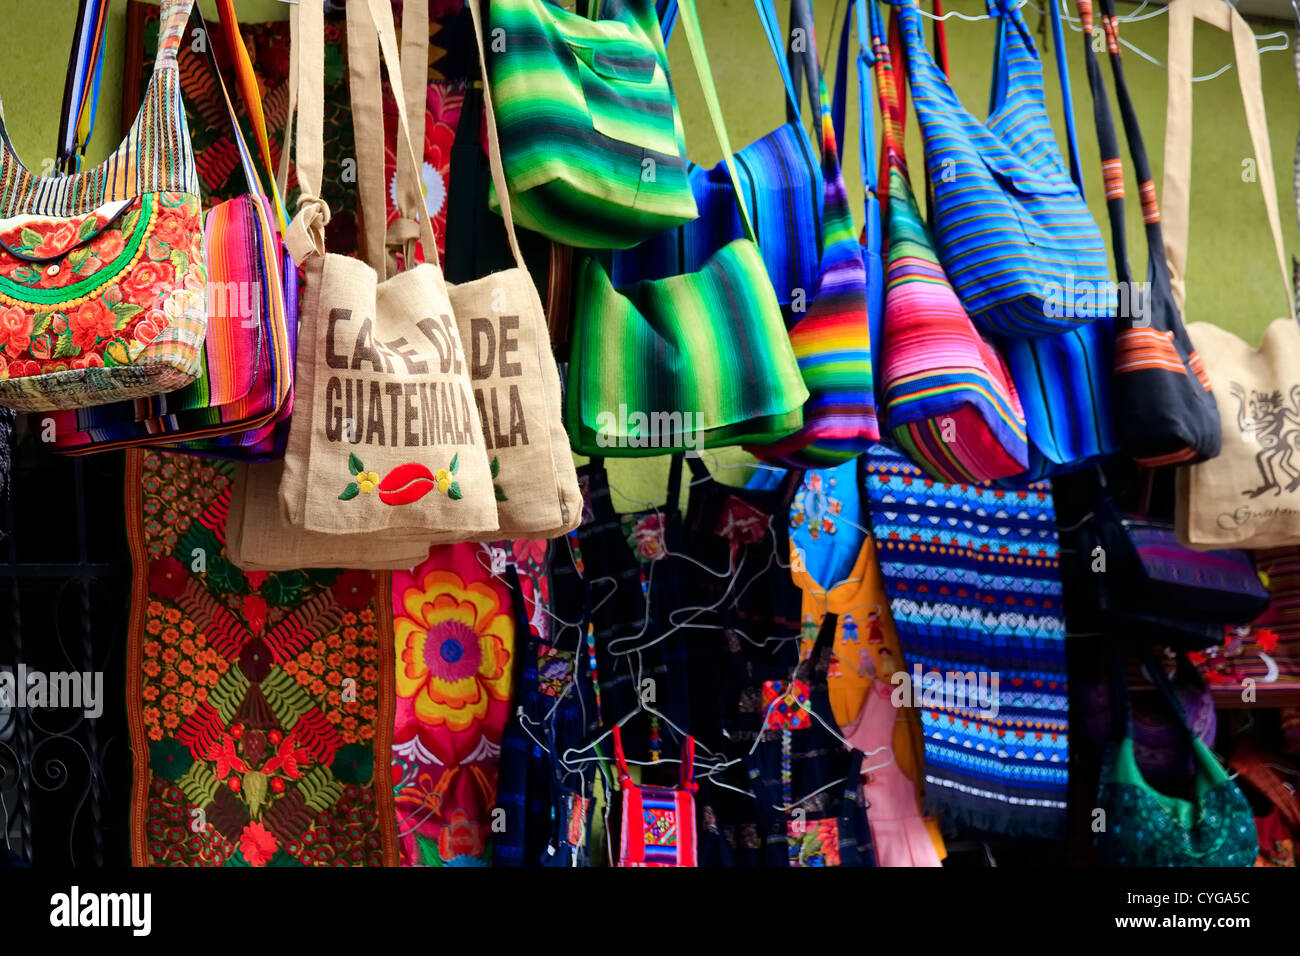 Bags for sale in Guatemala - Stock Image